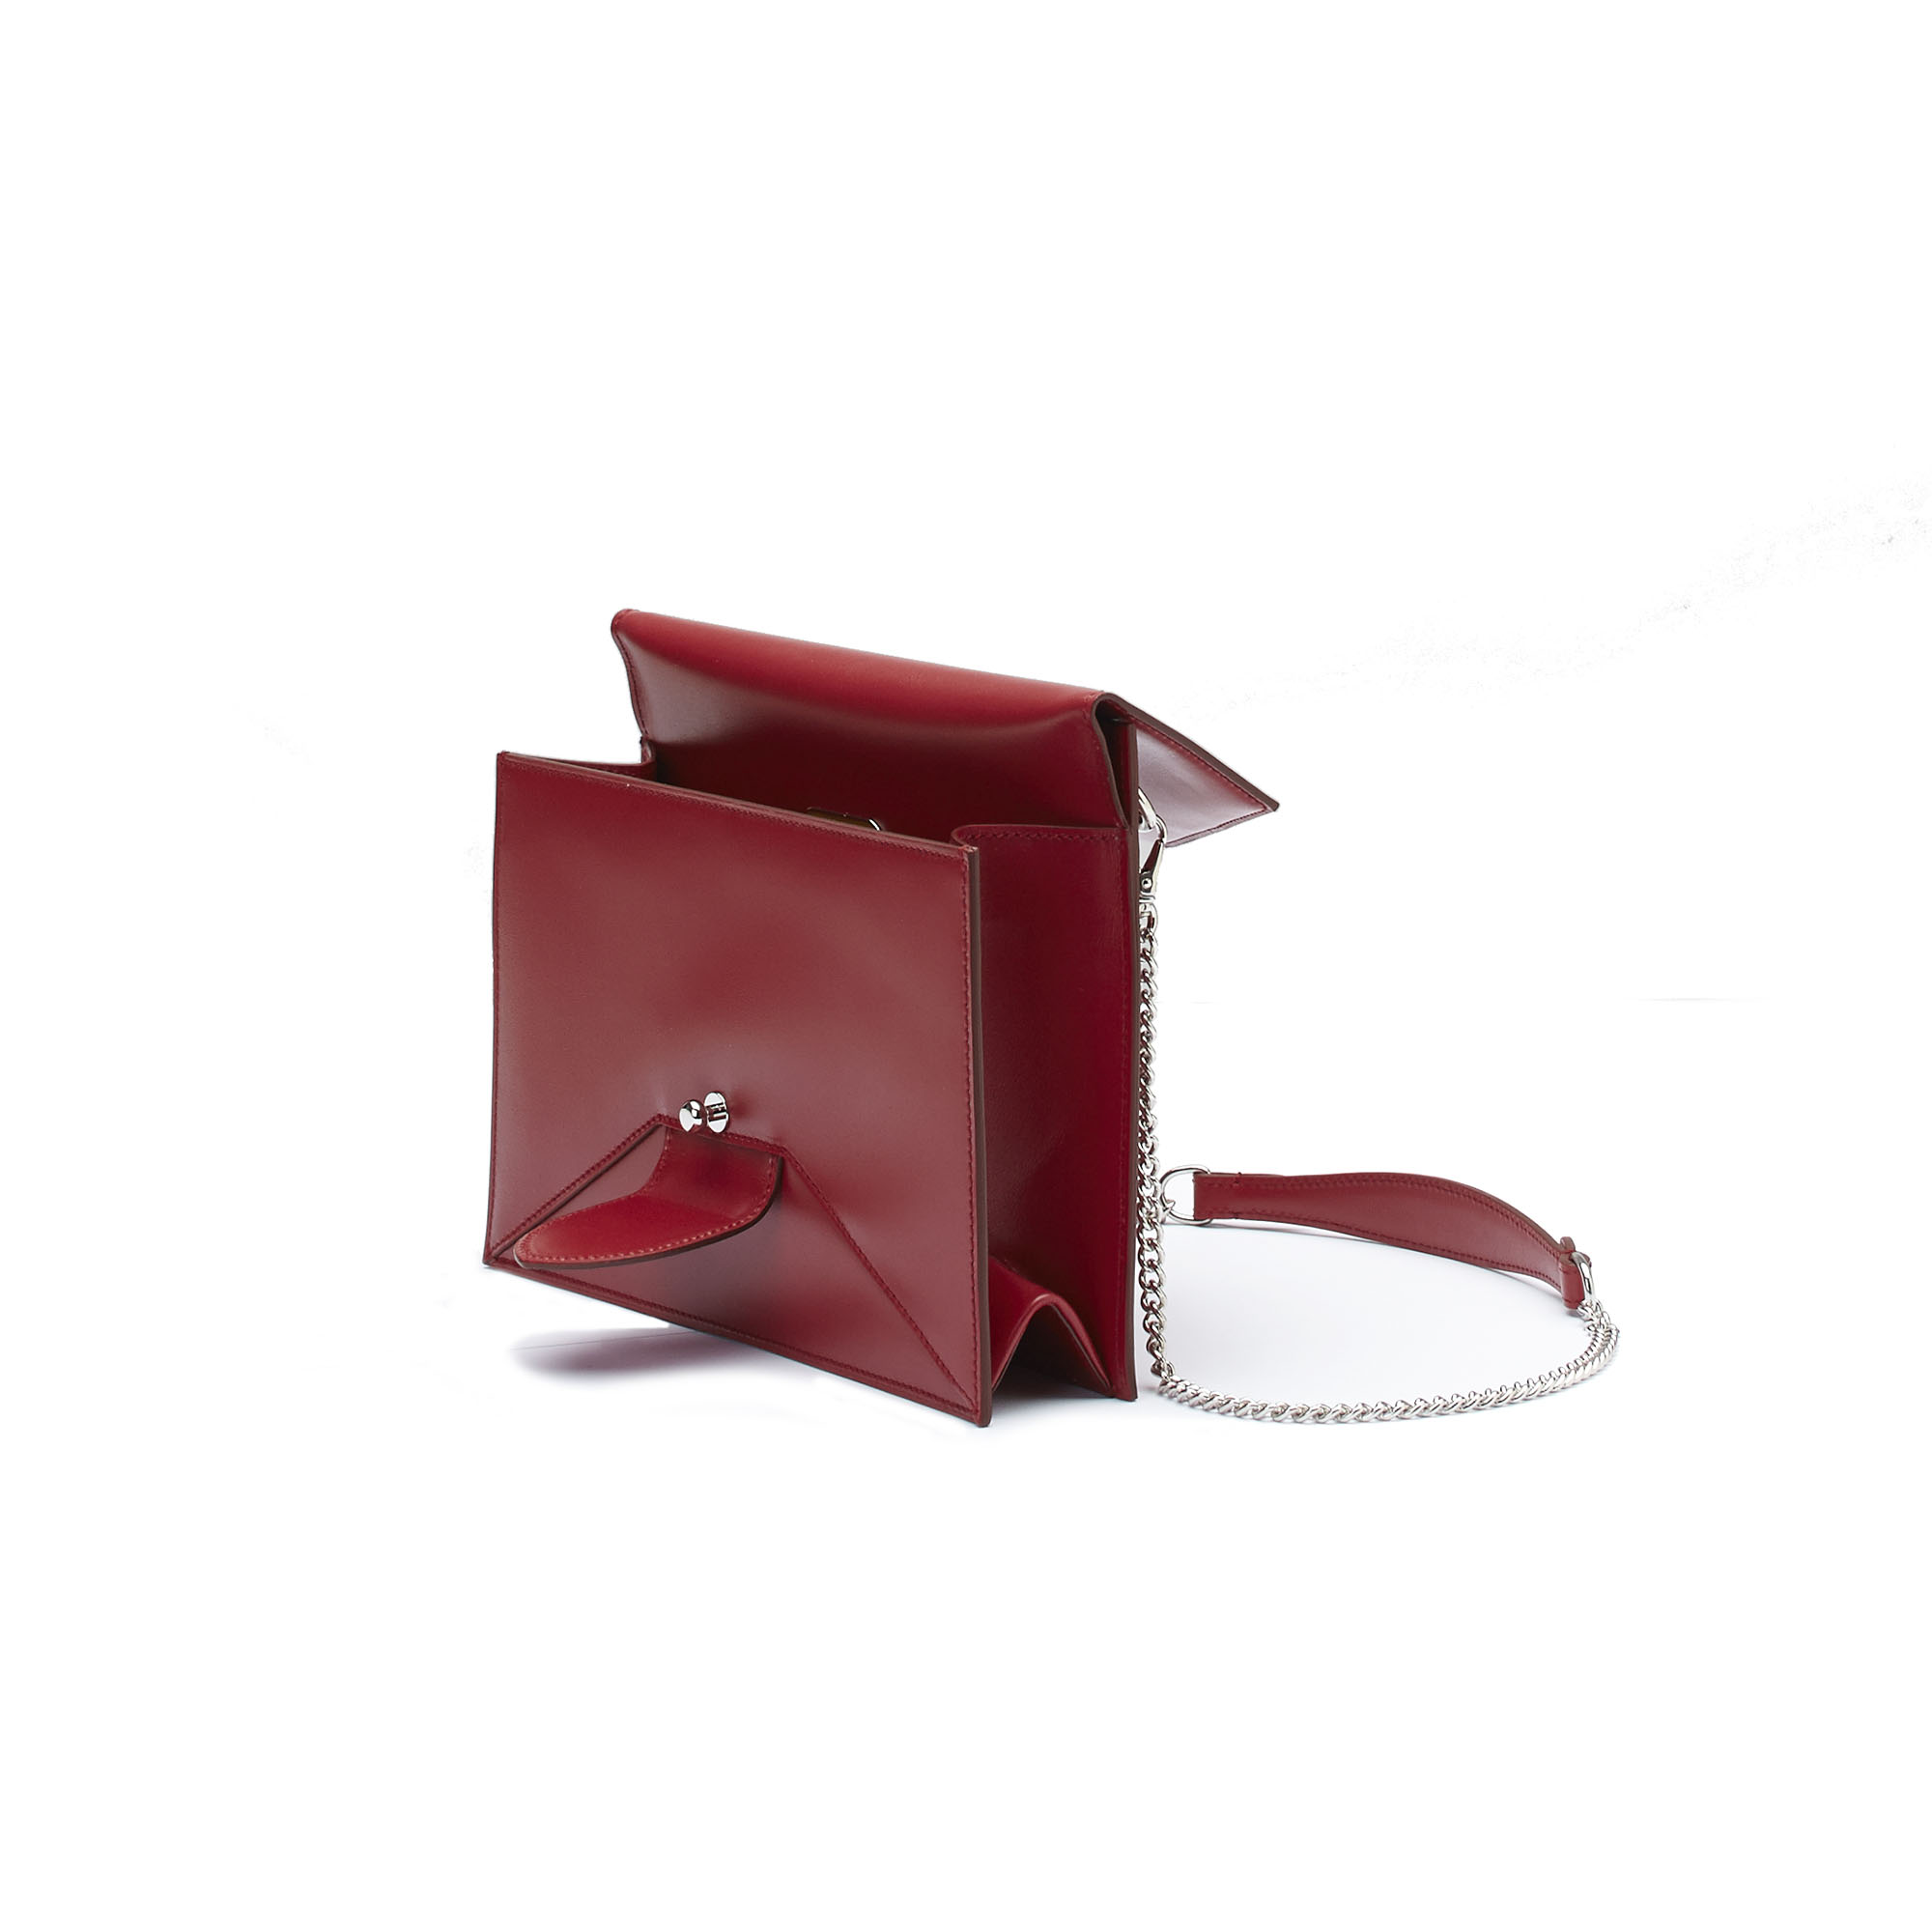 The red french calf Dafne Chain bag by Bertoni 1949 03